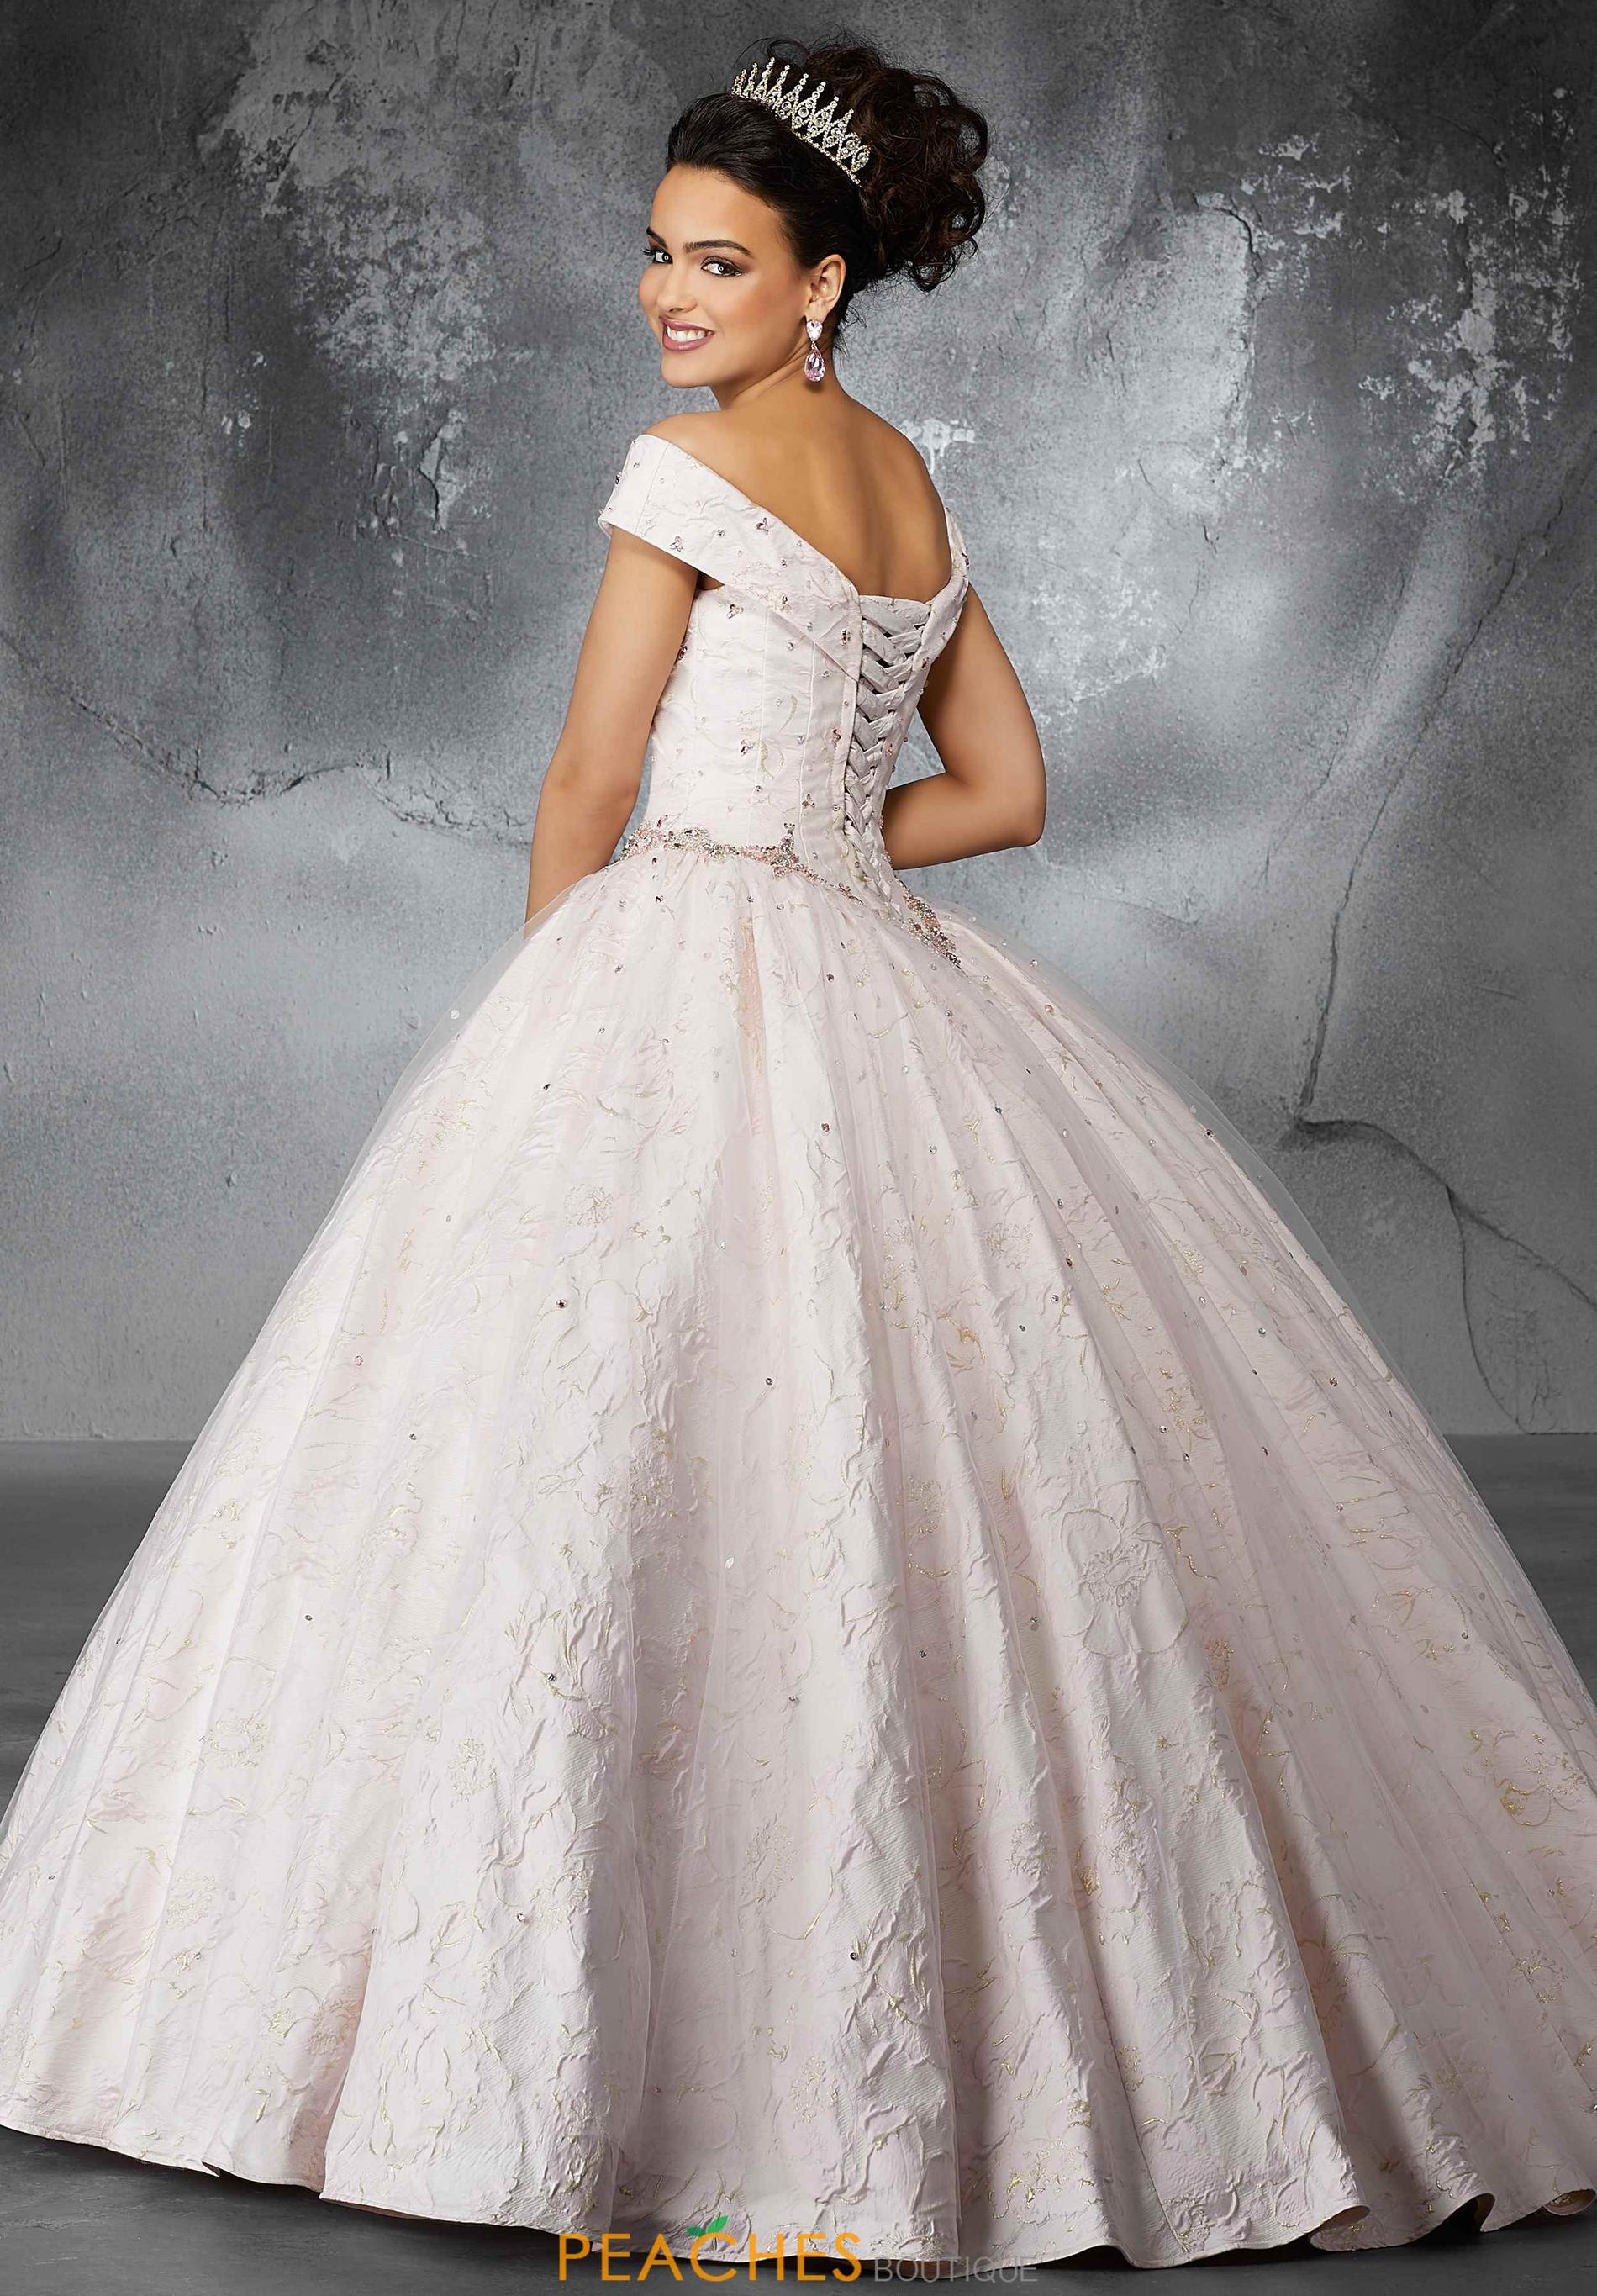 Mori Lee Pink Size 16 Corset Sweet 16 Pageant Quinceanera Ball gown on Queenly